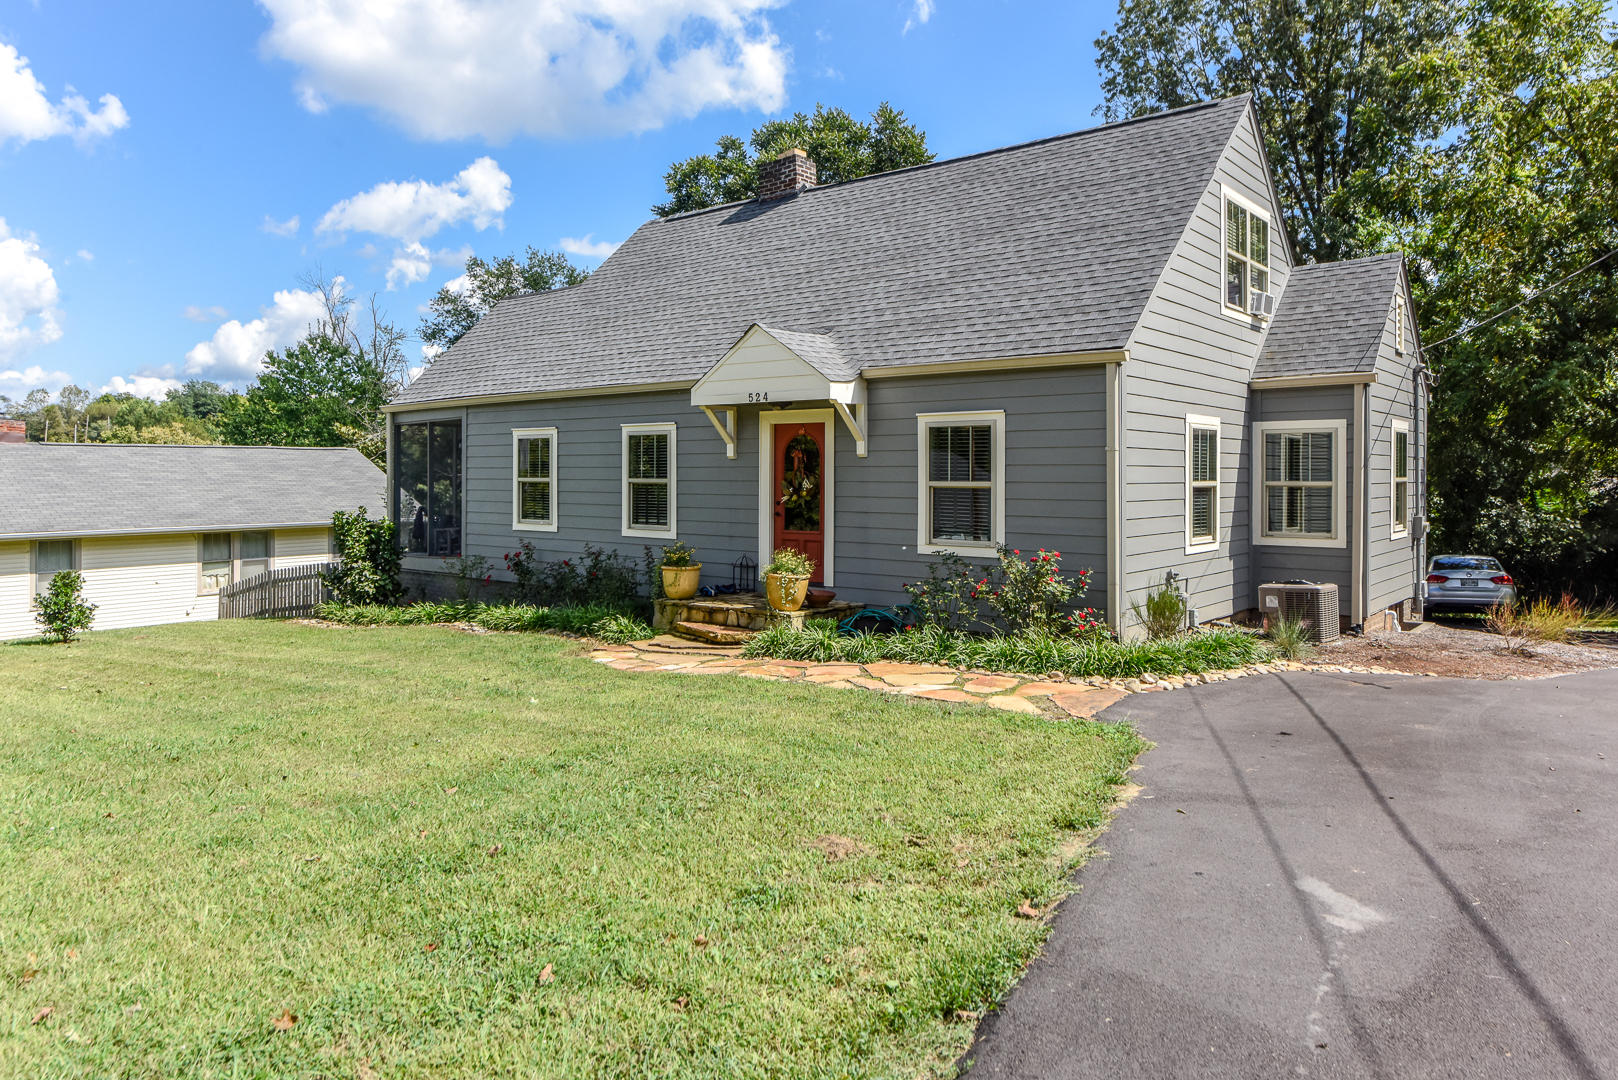 524 Mountain View Ave, Maryville, TN 37803